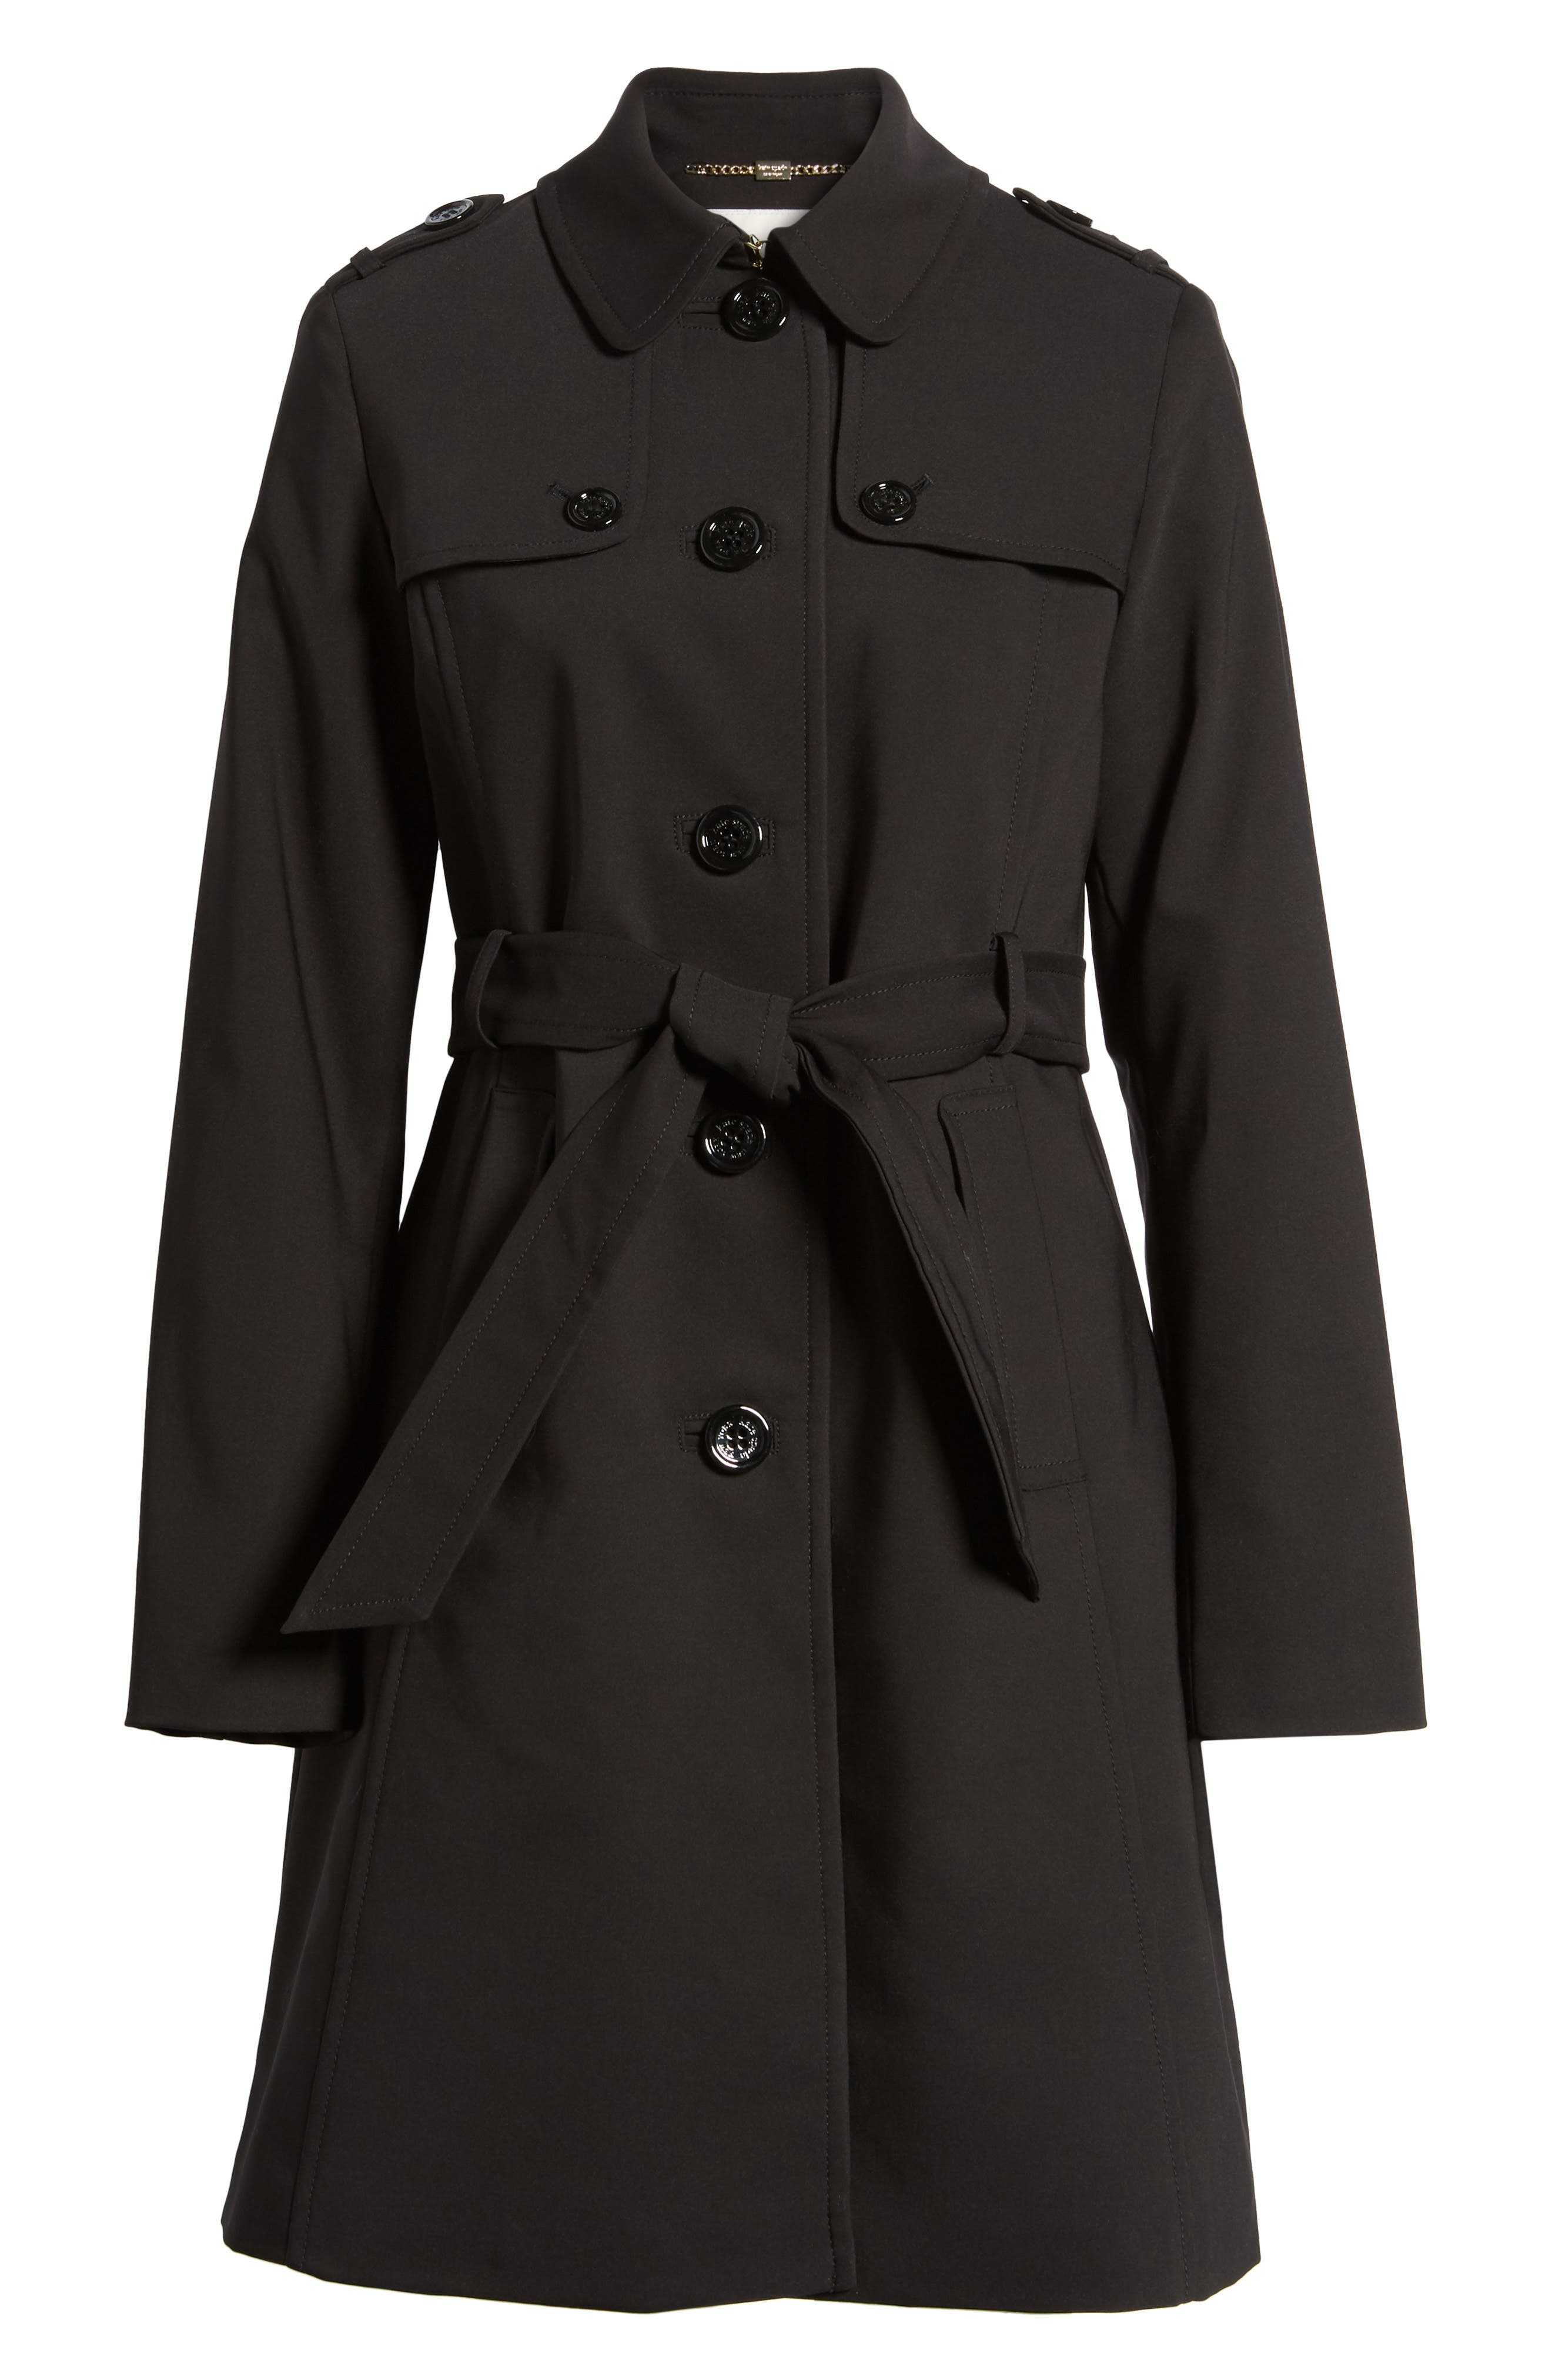 3-in-1 trench coat,                             Alternate thumbnail 5, color,                             001